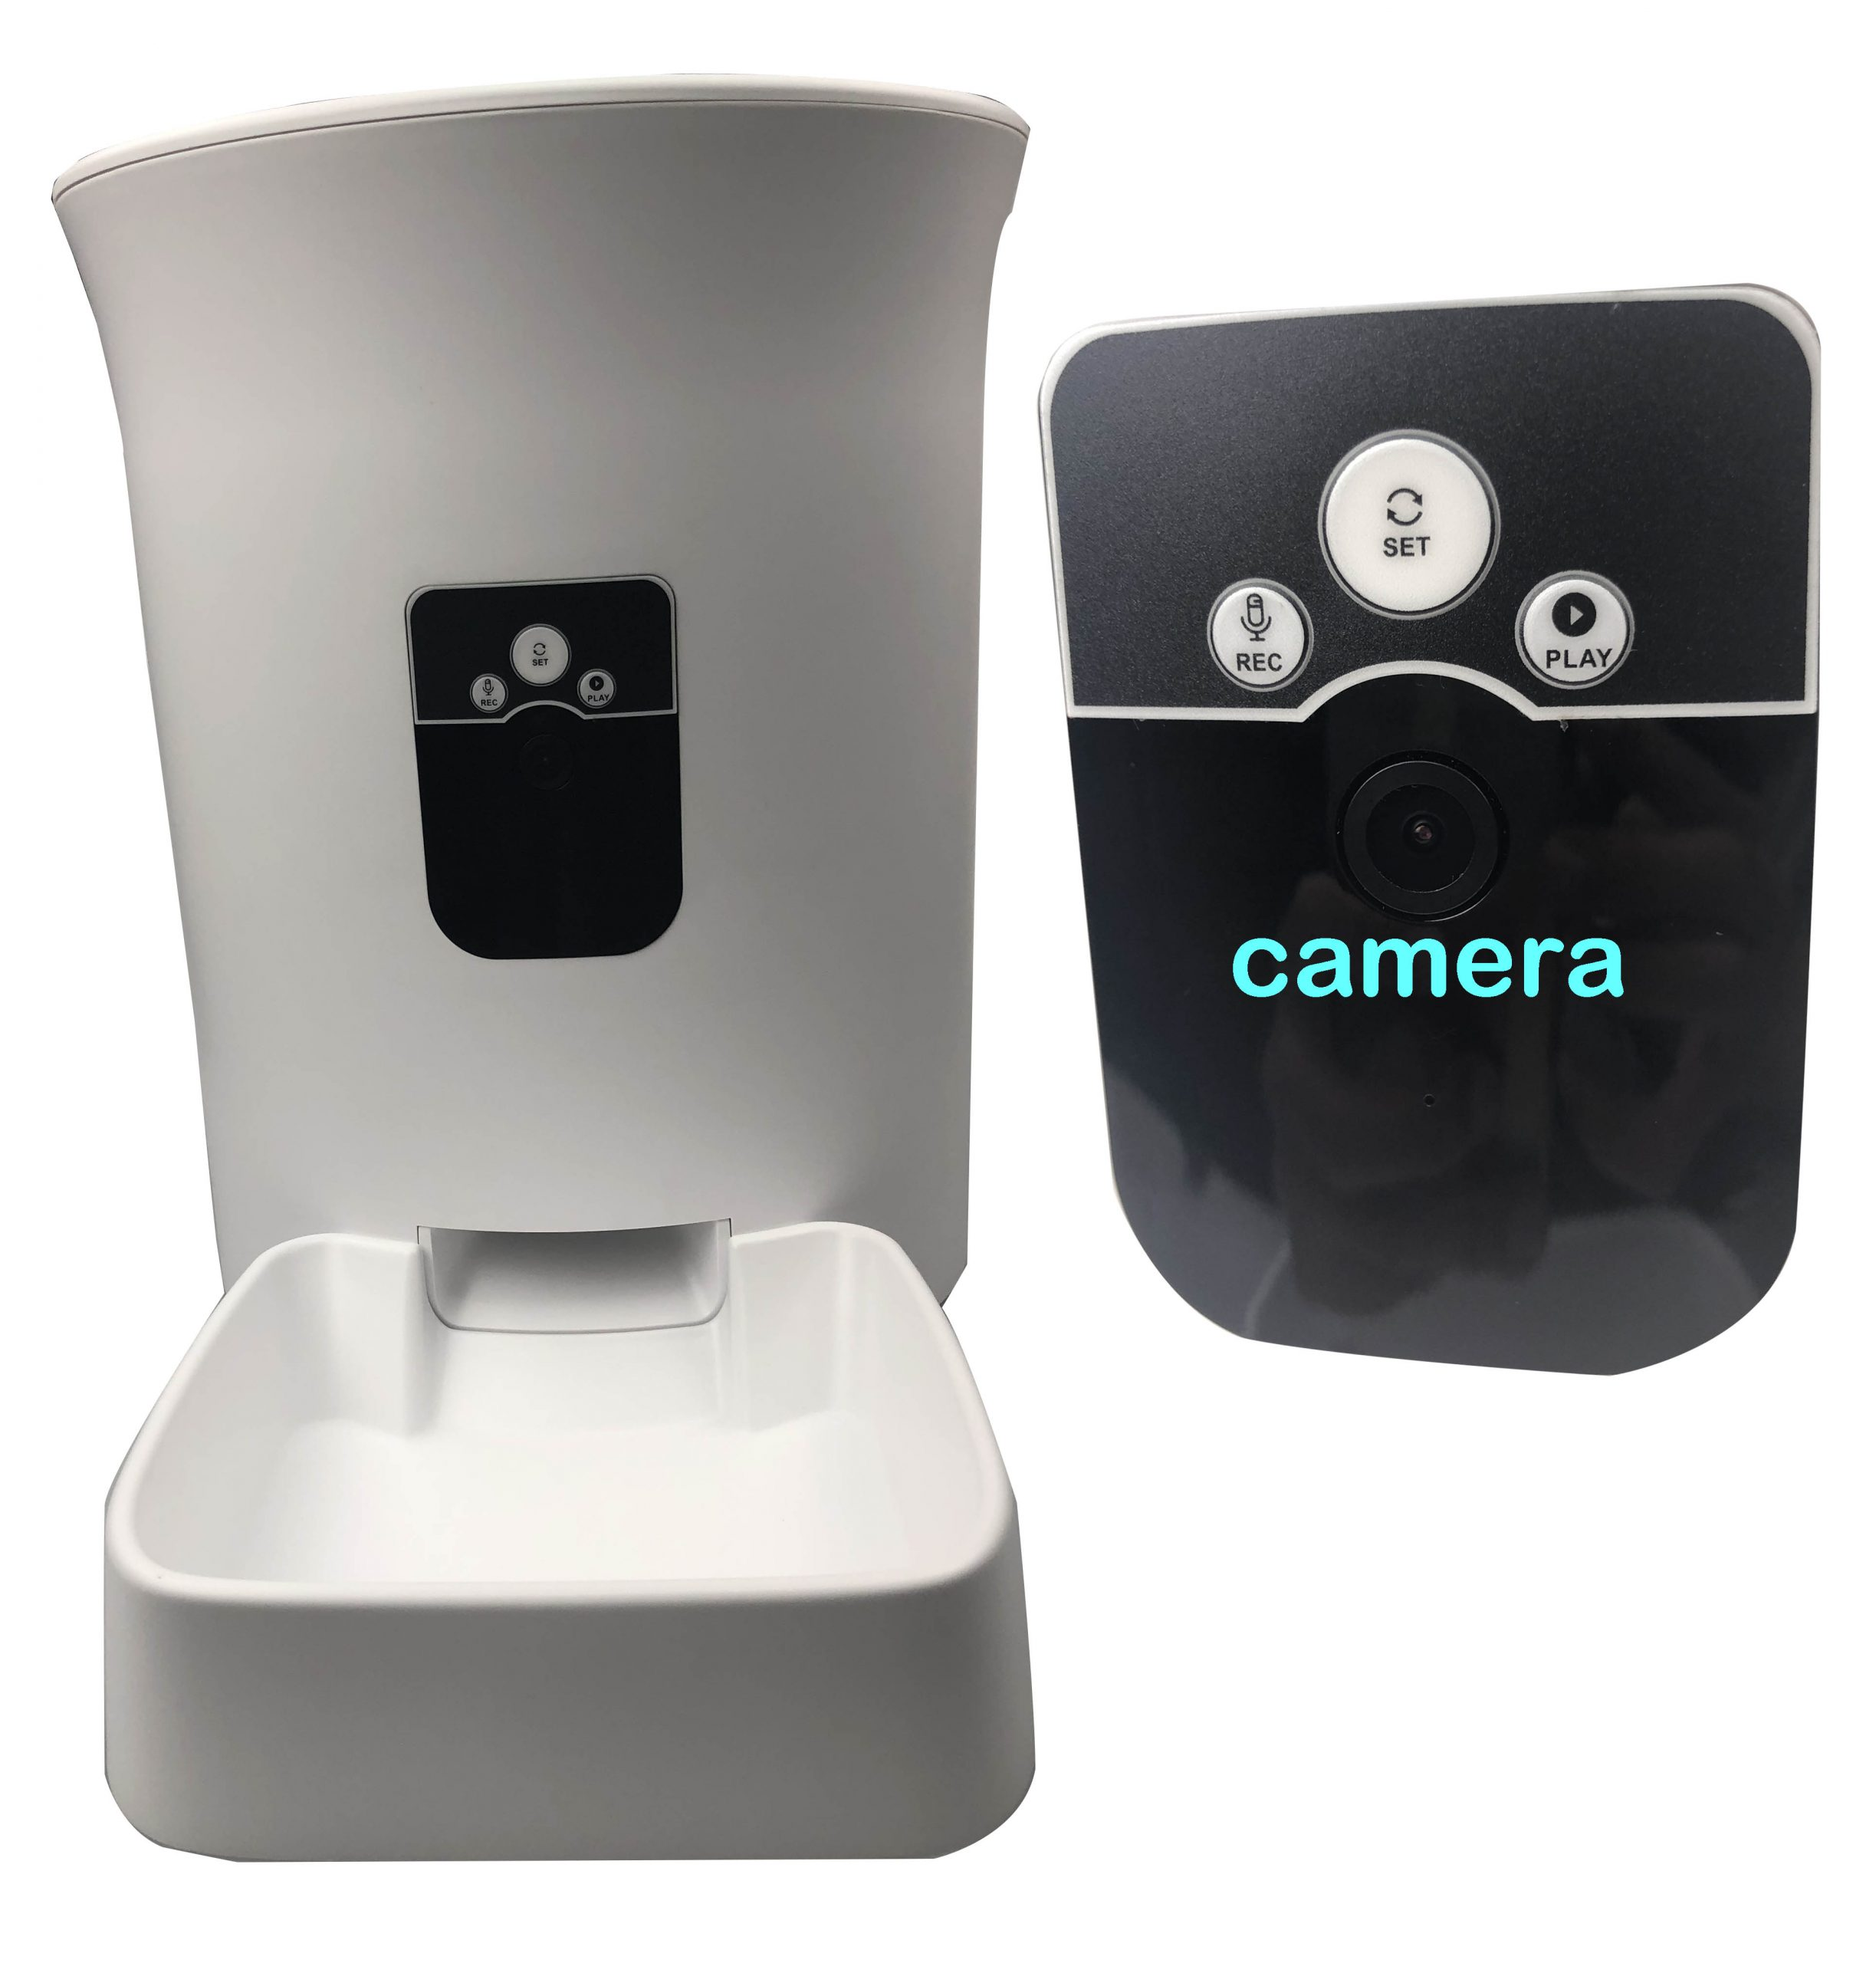 Large capacity automatic dog feeder with remote camera